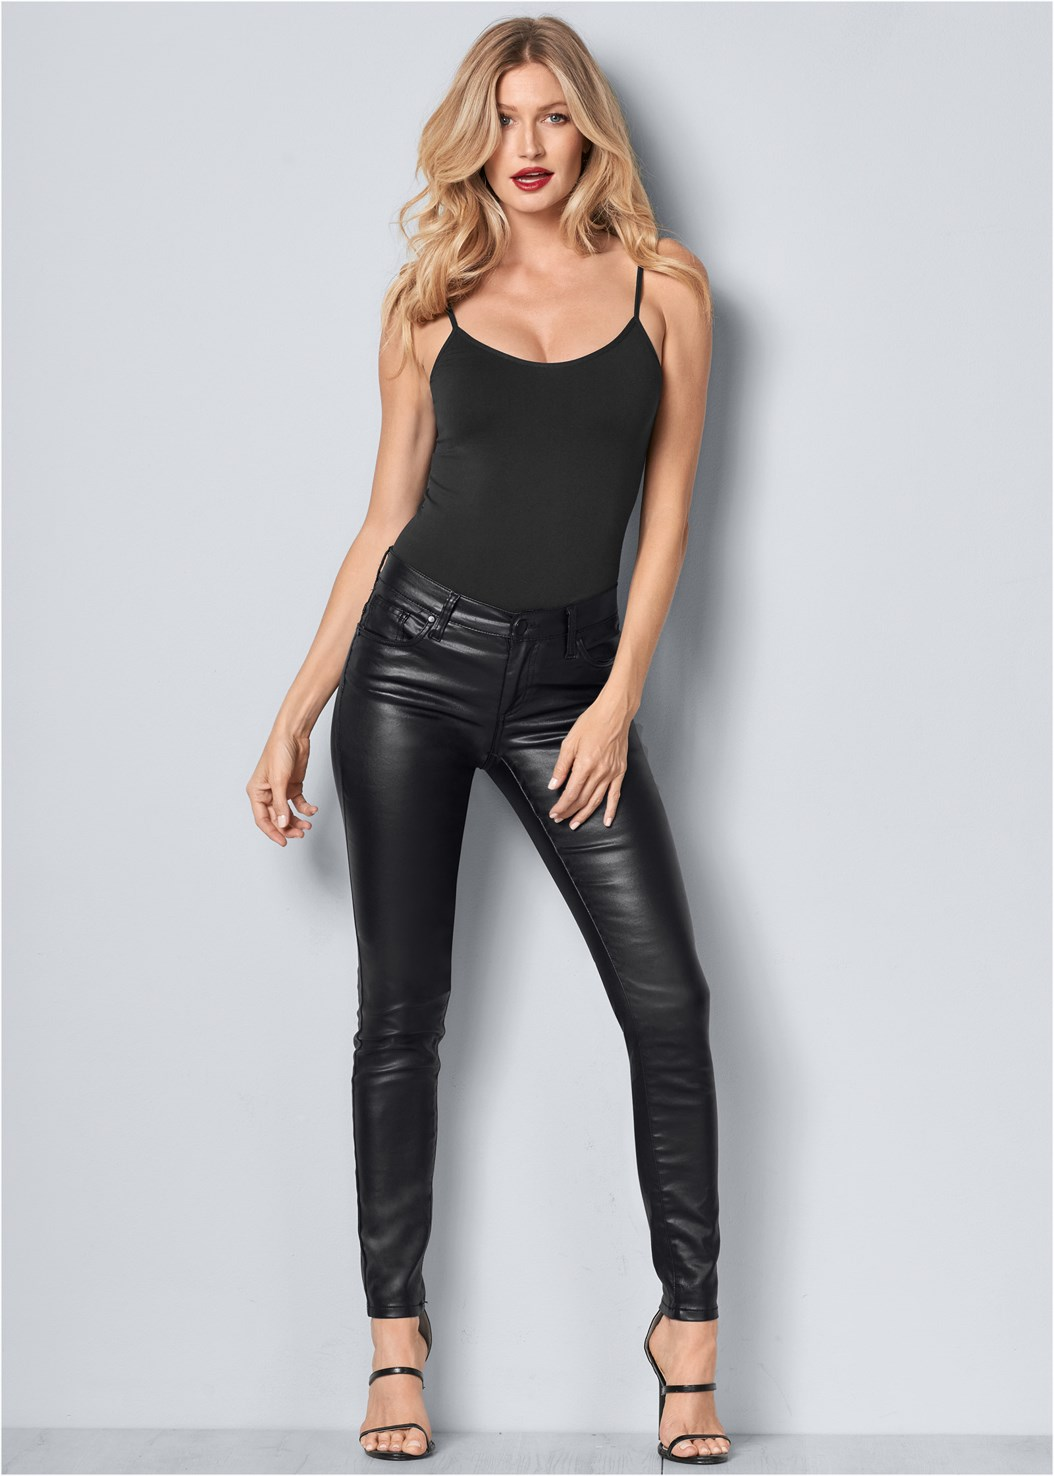 Faux Leather Pants,Seamless Cami,High Heel Strappy Sandals,Block Heels,Beaded Crossbody